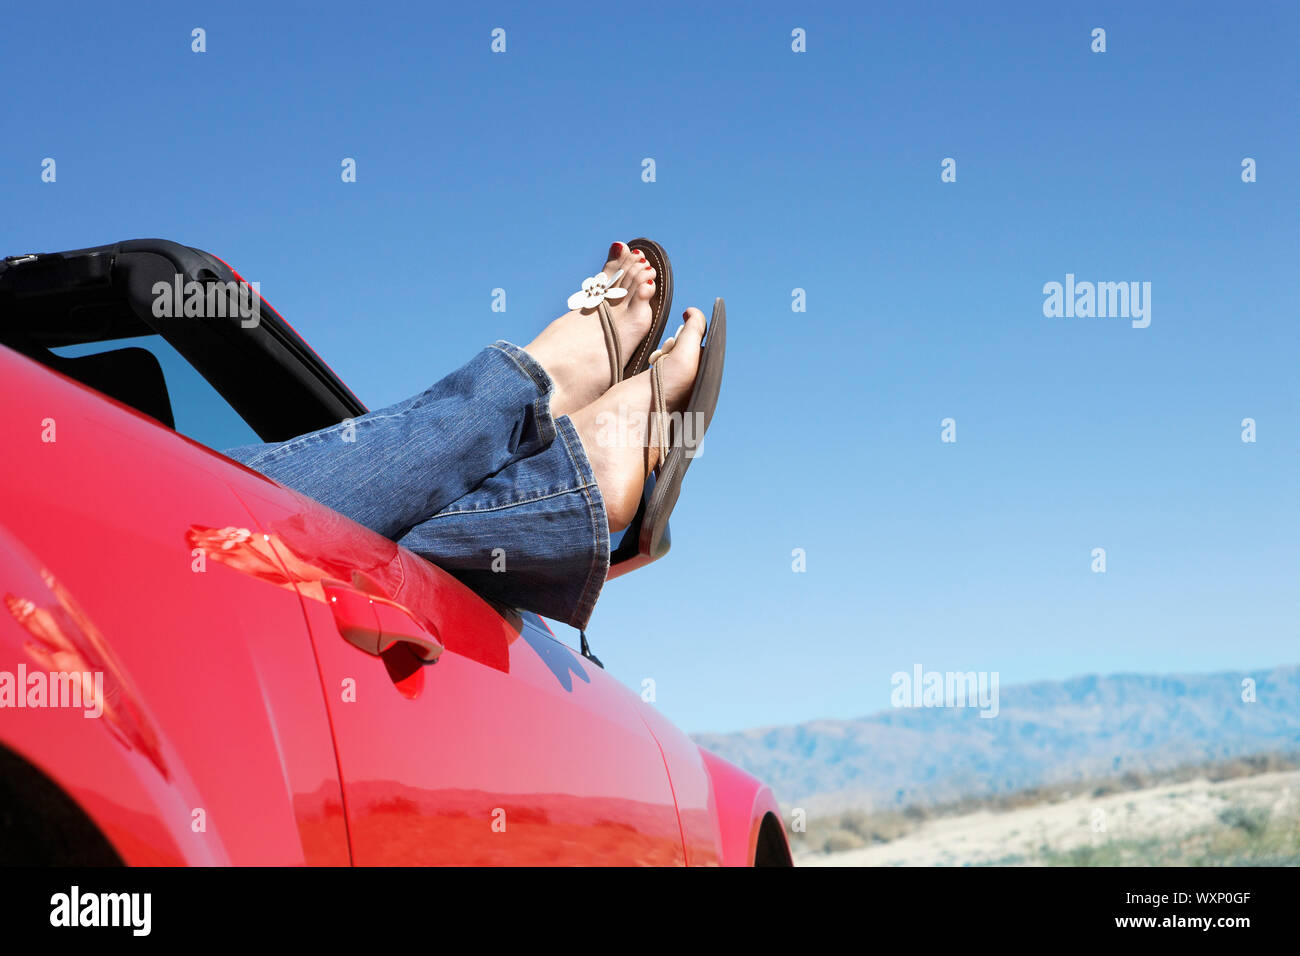 Feet Dangling Out of a Convertible Stock Photo